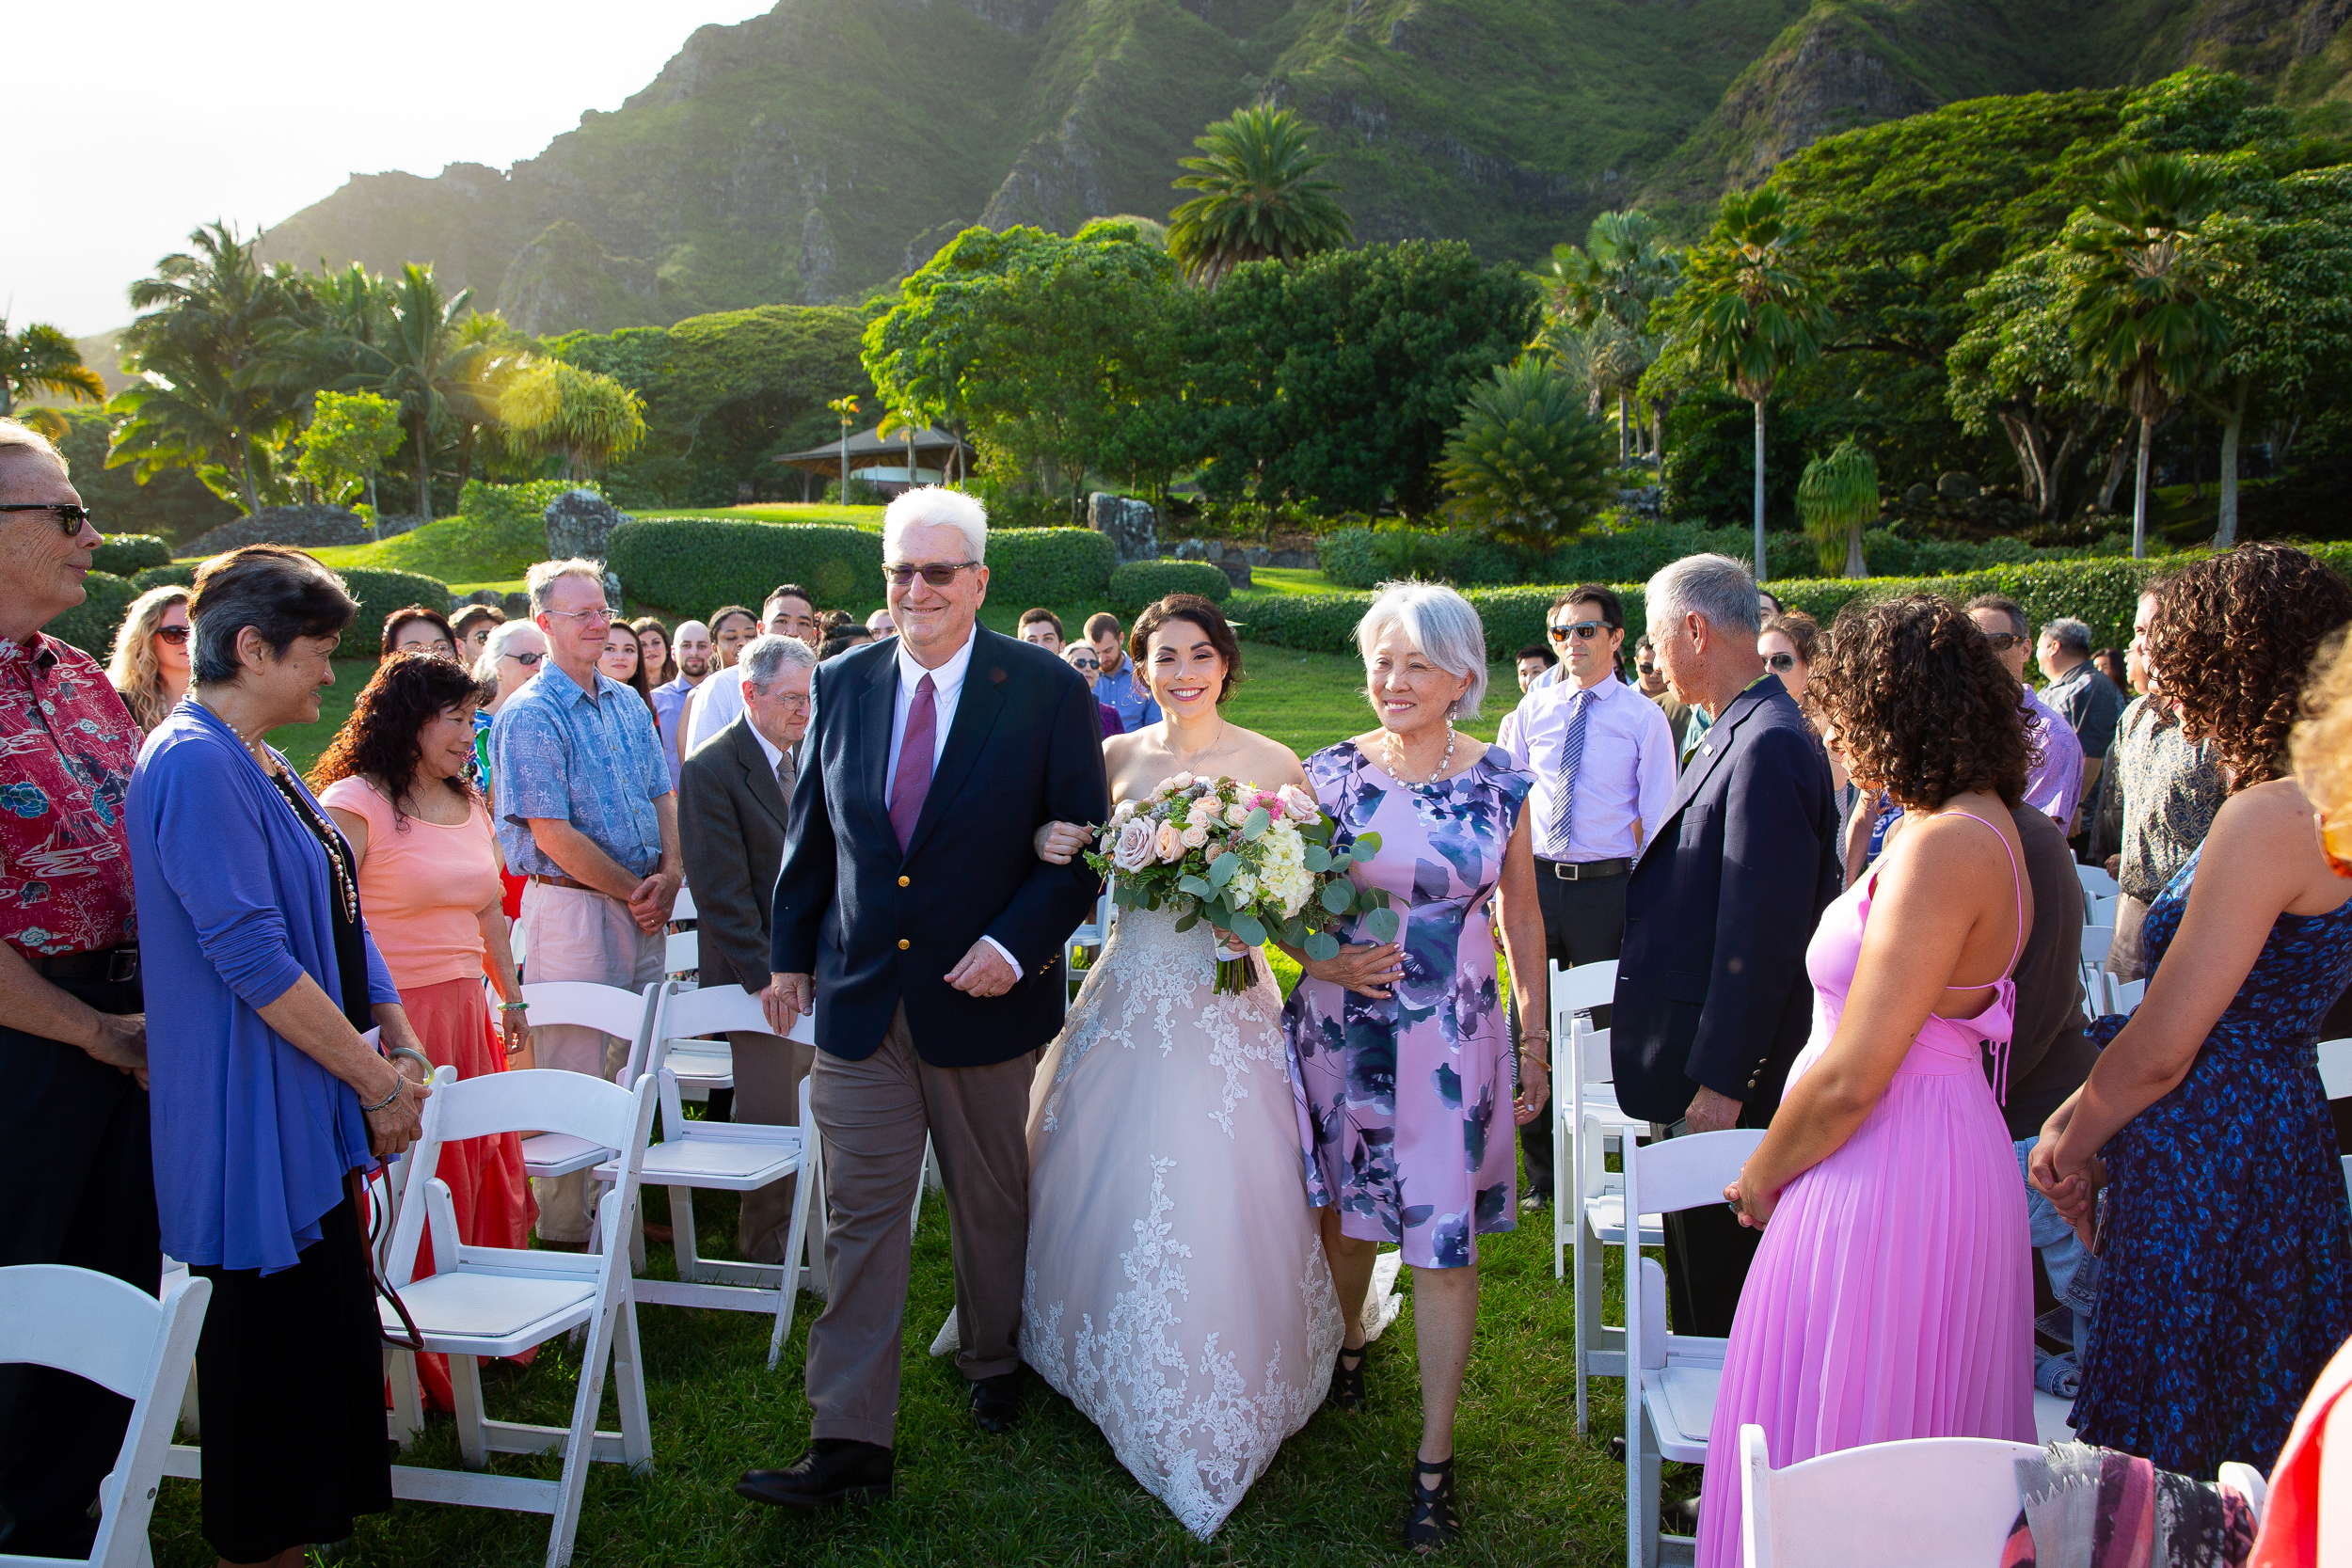 Kualoa Ranch Wedding in Hawaii -34.jpg